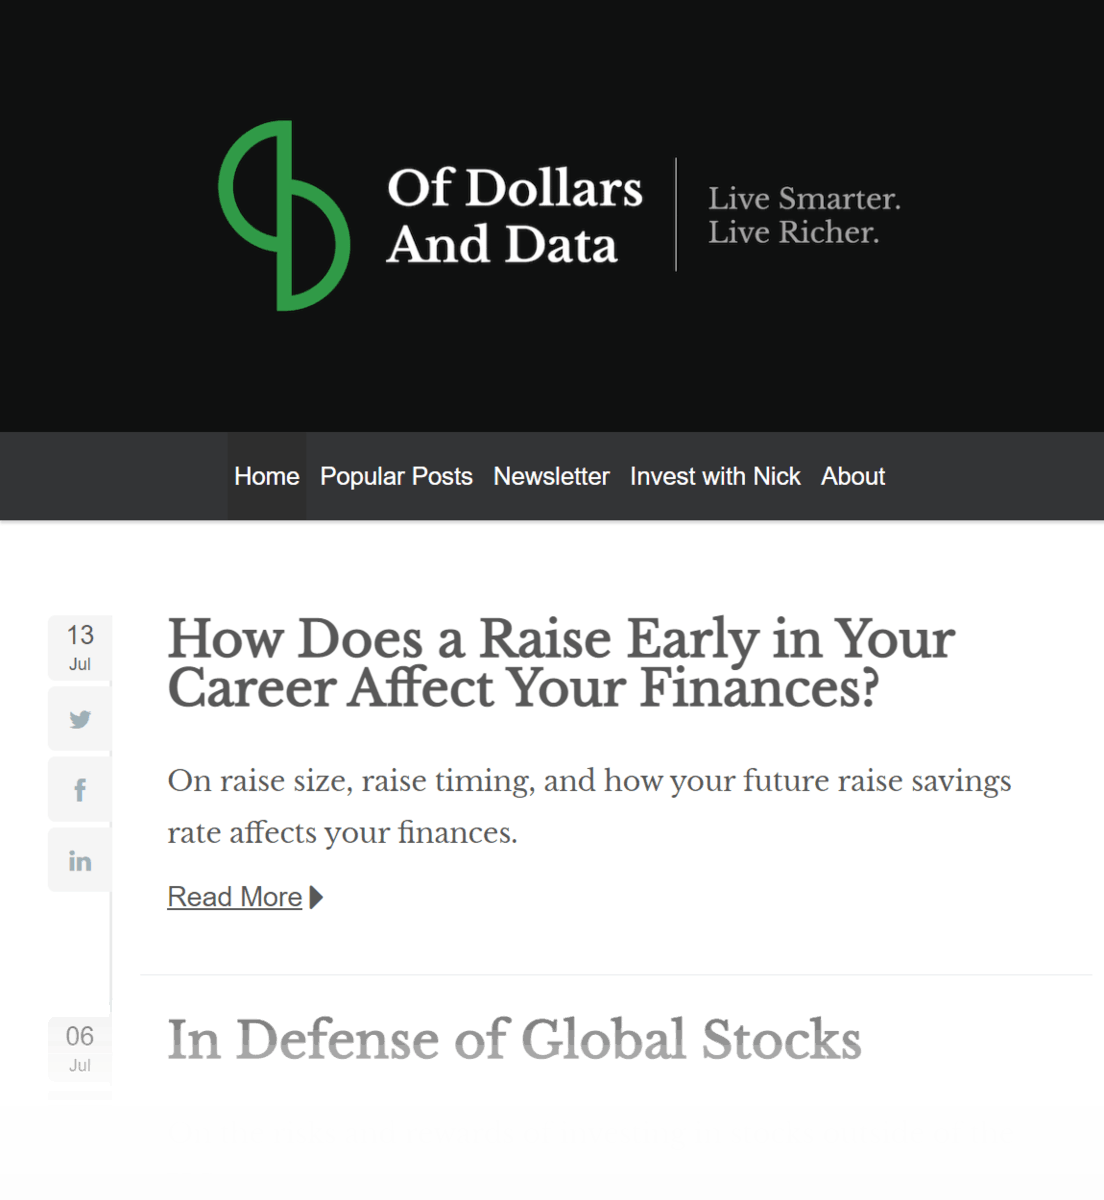 Of Dollars And Data